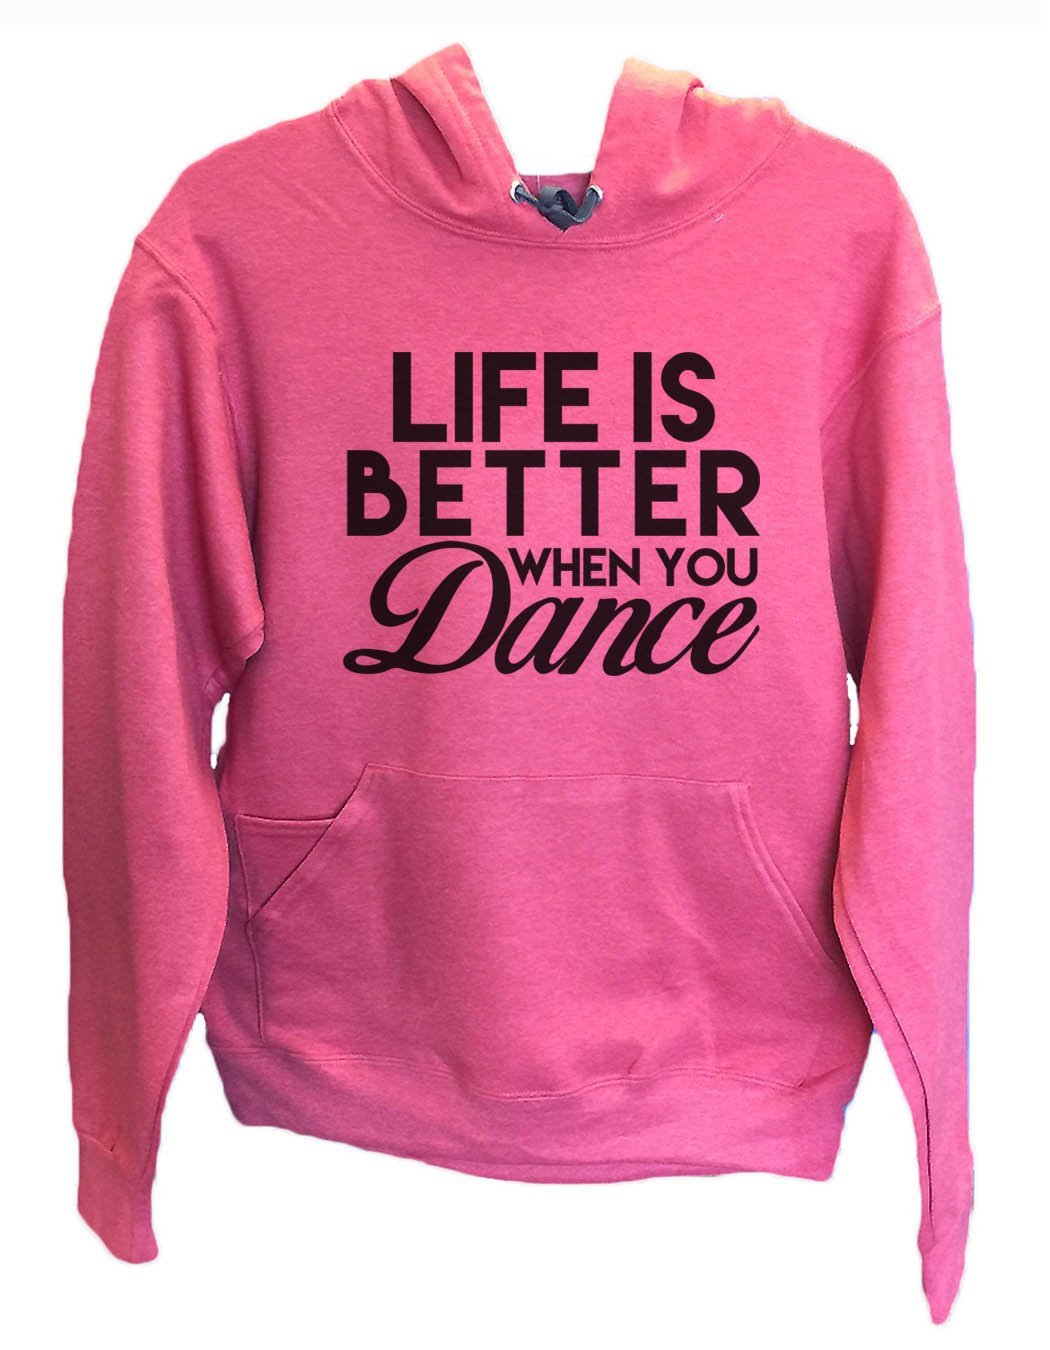 UNISEX HOODIE - Life Is Better When Dance - FUNNY MENS AND WOMENS HOODED SWEATSHIRTS - 2127 Funny Shirt Small / Cranberry Red